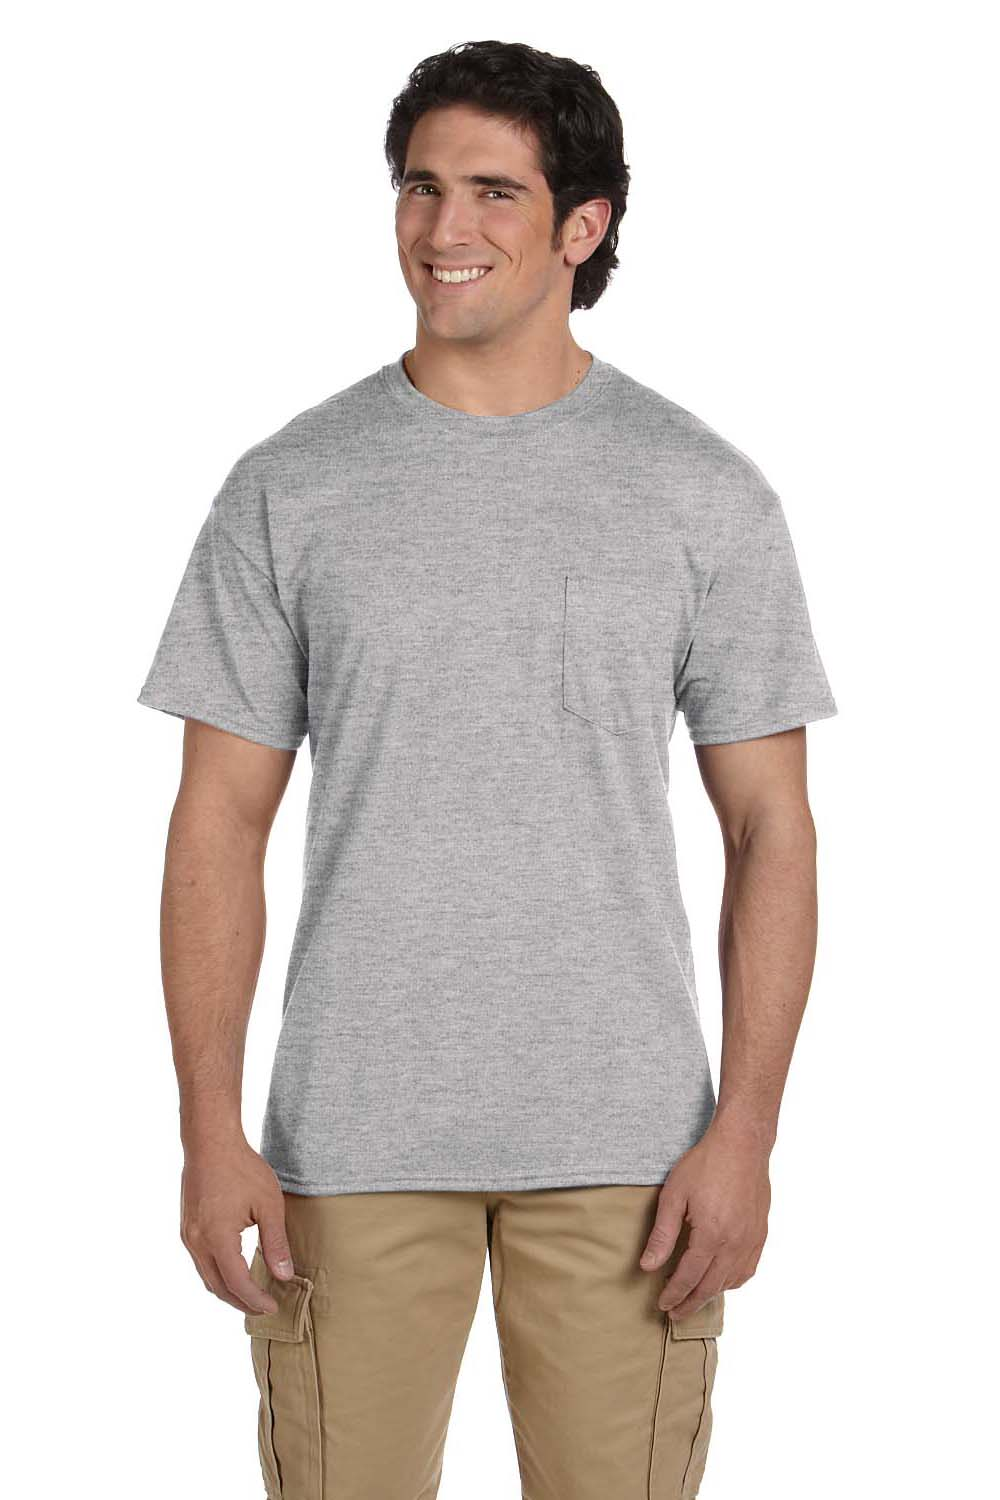 Gildan G830 Mens DryBlend Moisture Wicking Short Sleeve Crewneck T-Shirt w/ Pocket Sport Grey Front